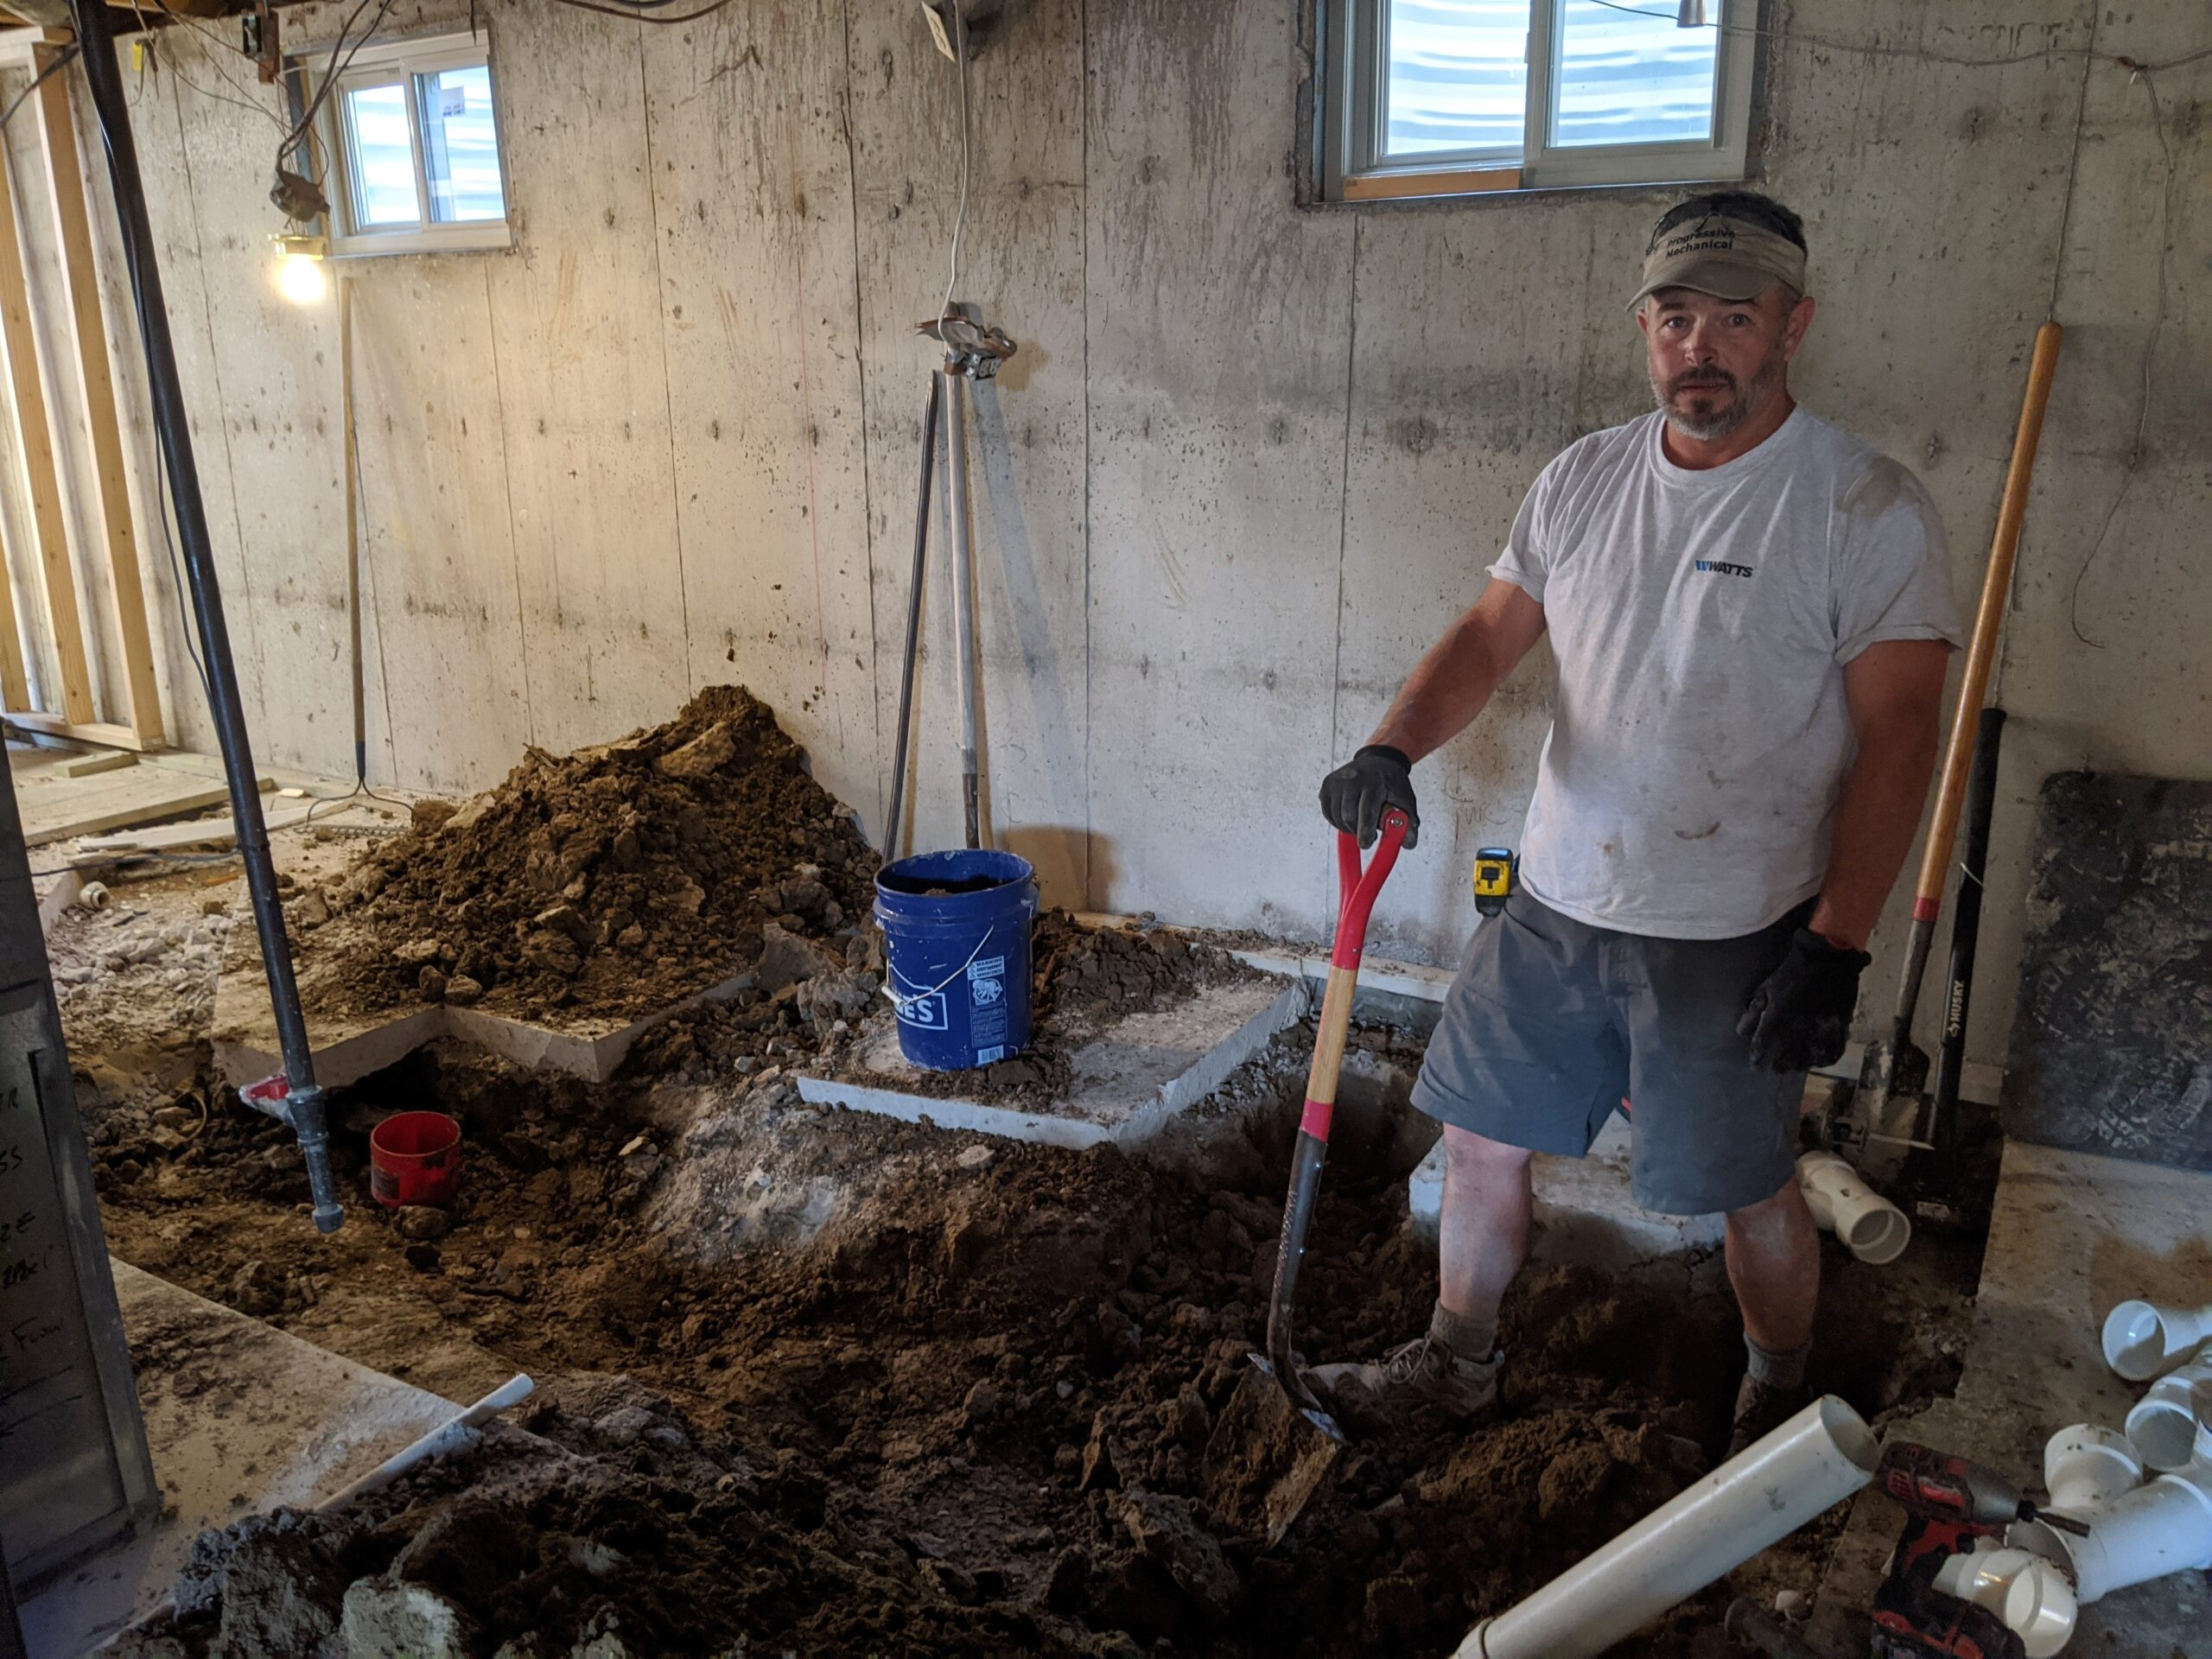 Our trusted licensed plumber, Jake Jacoby owner of Progressive Mechanical, shows how dirty and difficult it is to cut the concrete basement floor and dig up the soil beneath it to install new pipes for the bathroom/laundry room.